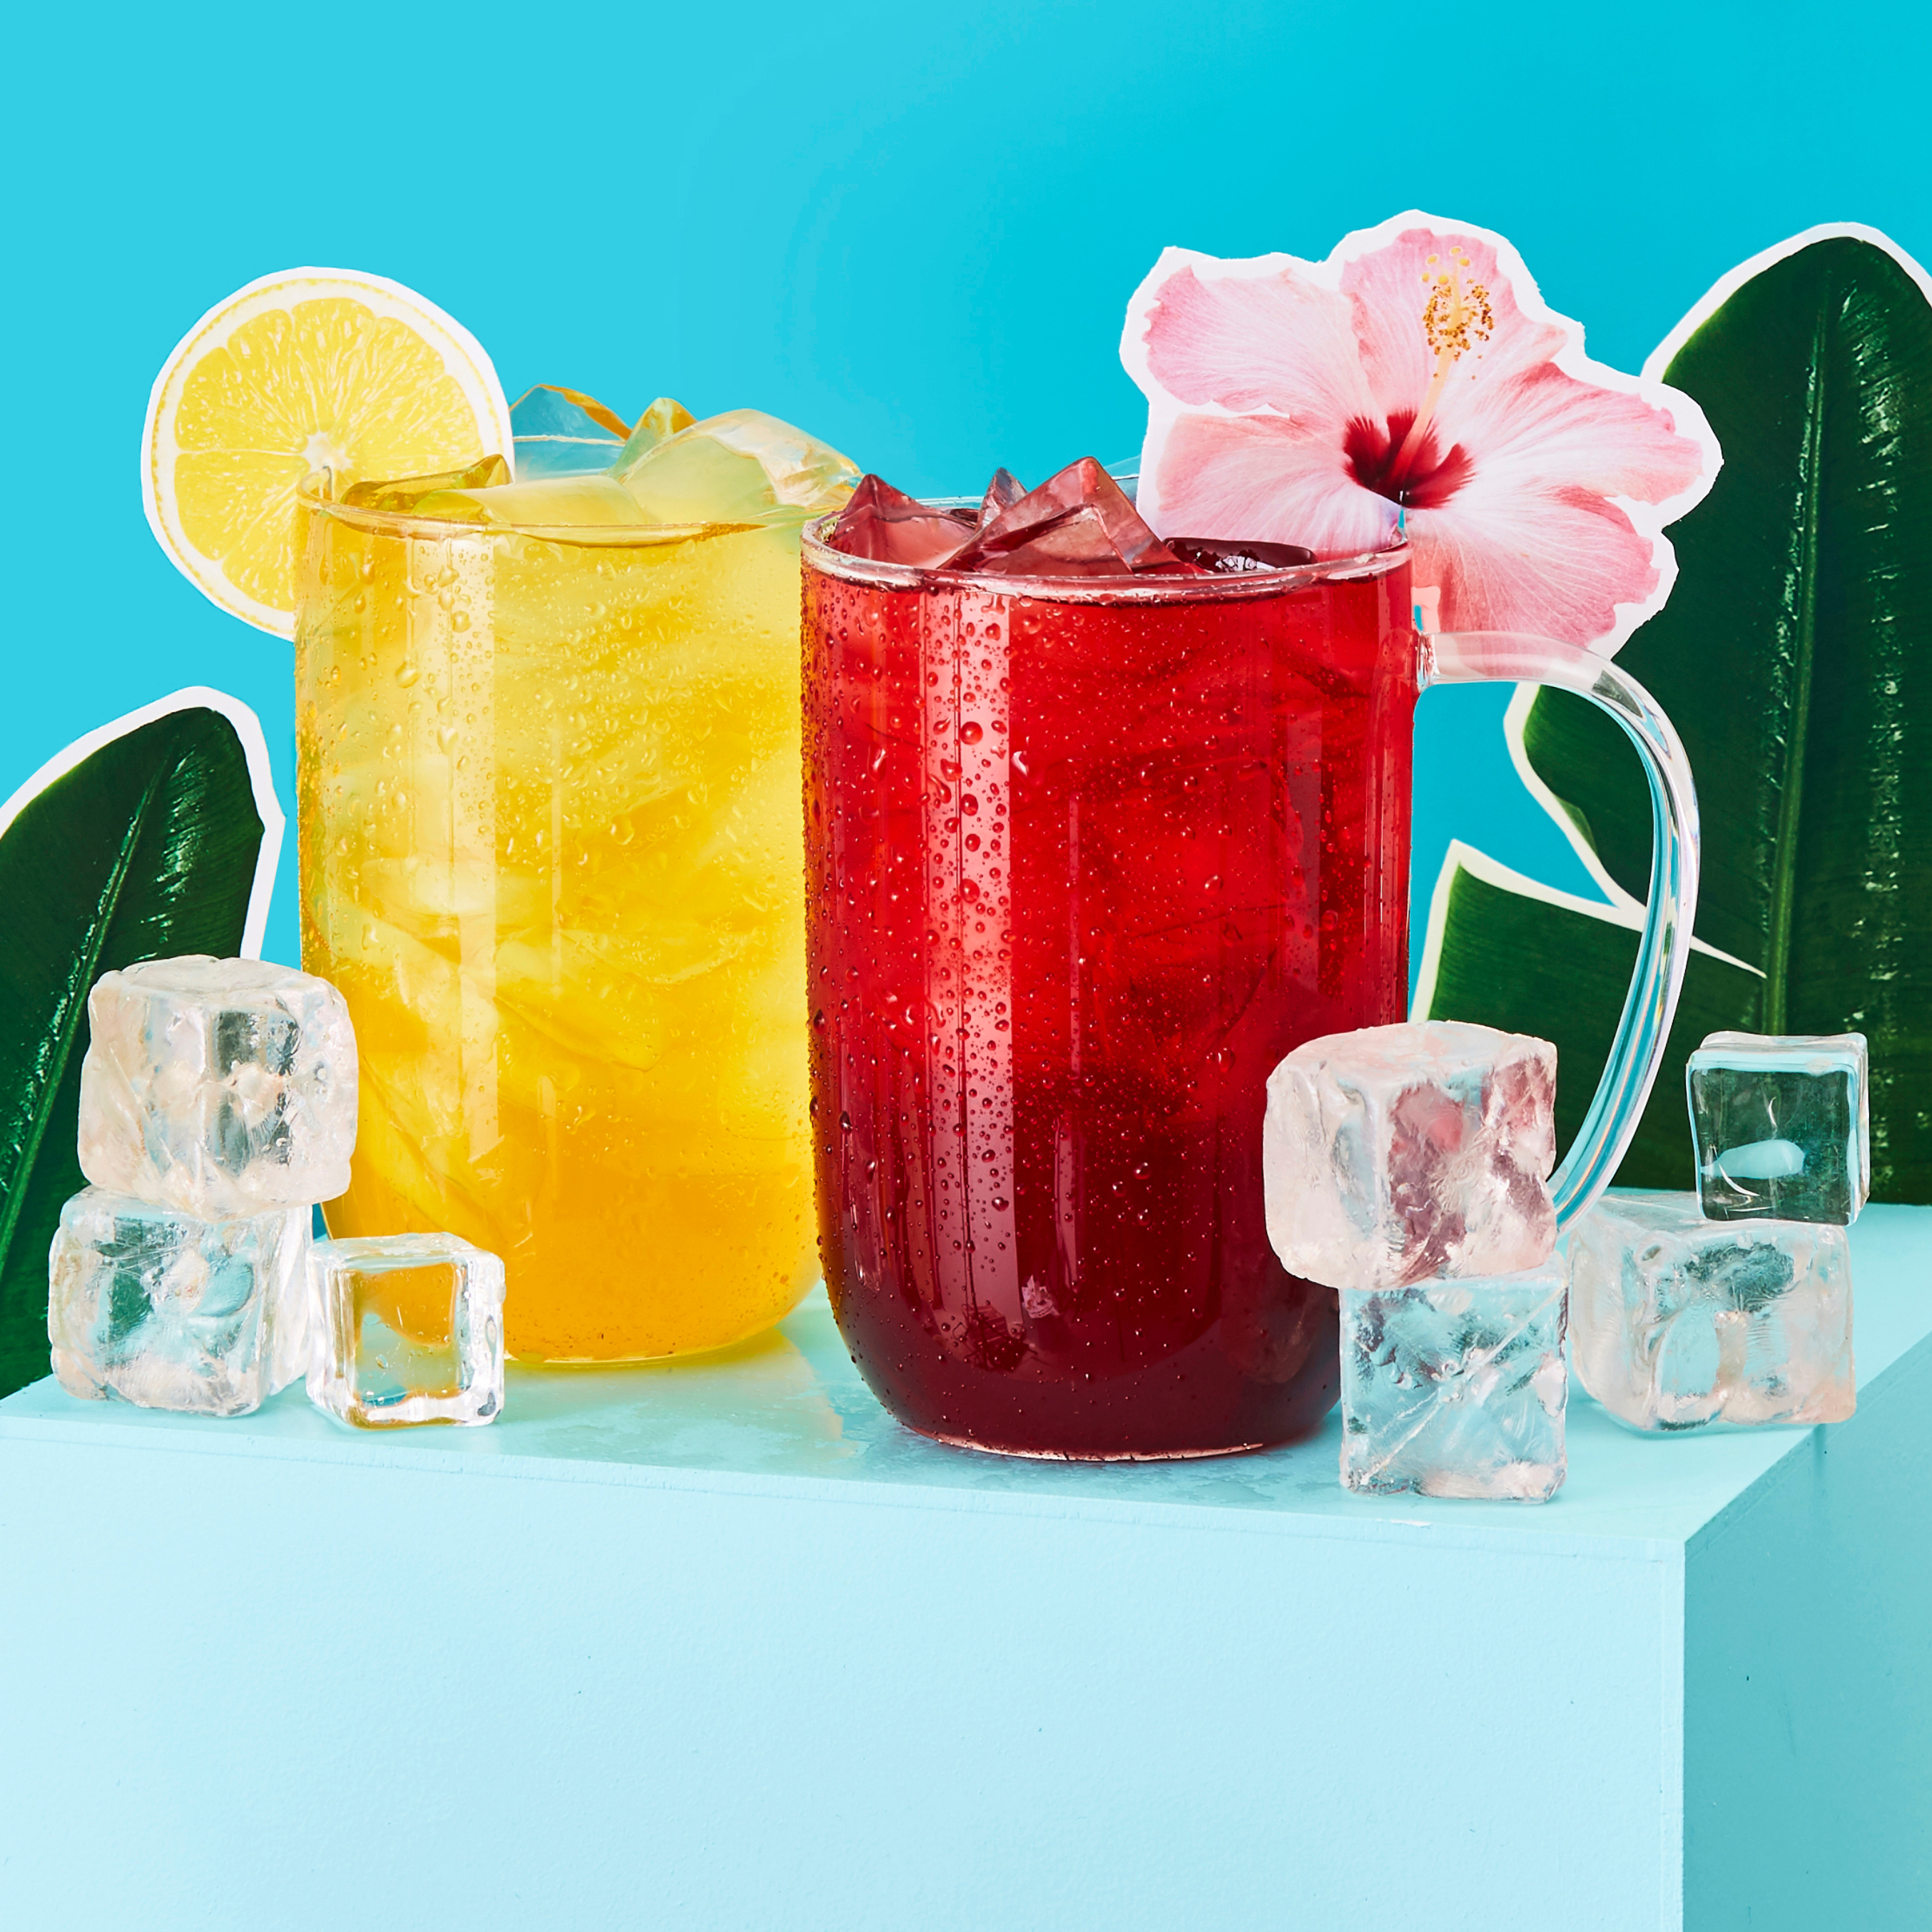 Clear 16 oz glass mug with lemonade iced tea, clear 16 oz glass mug with hibiscus iced tea.